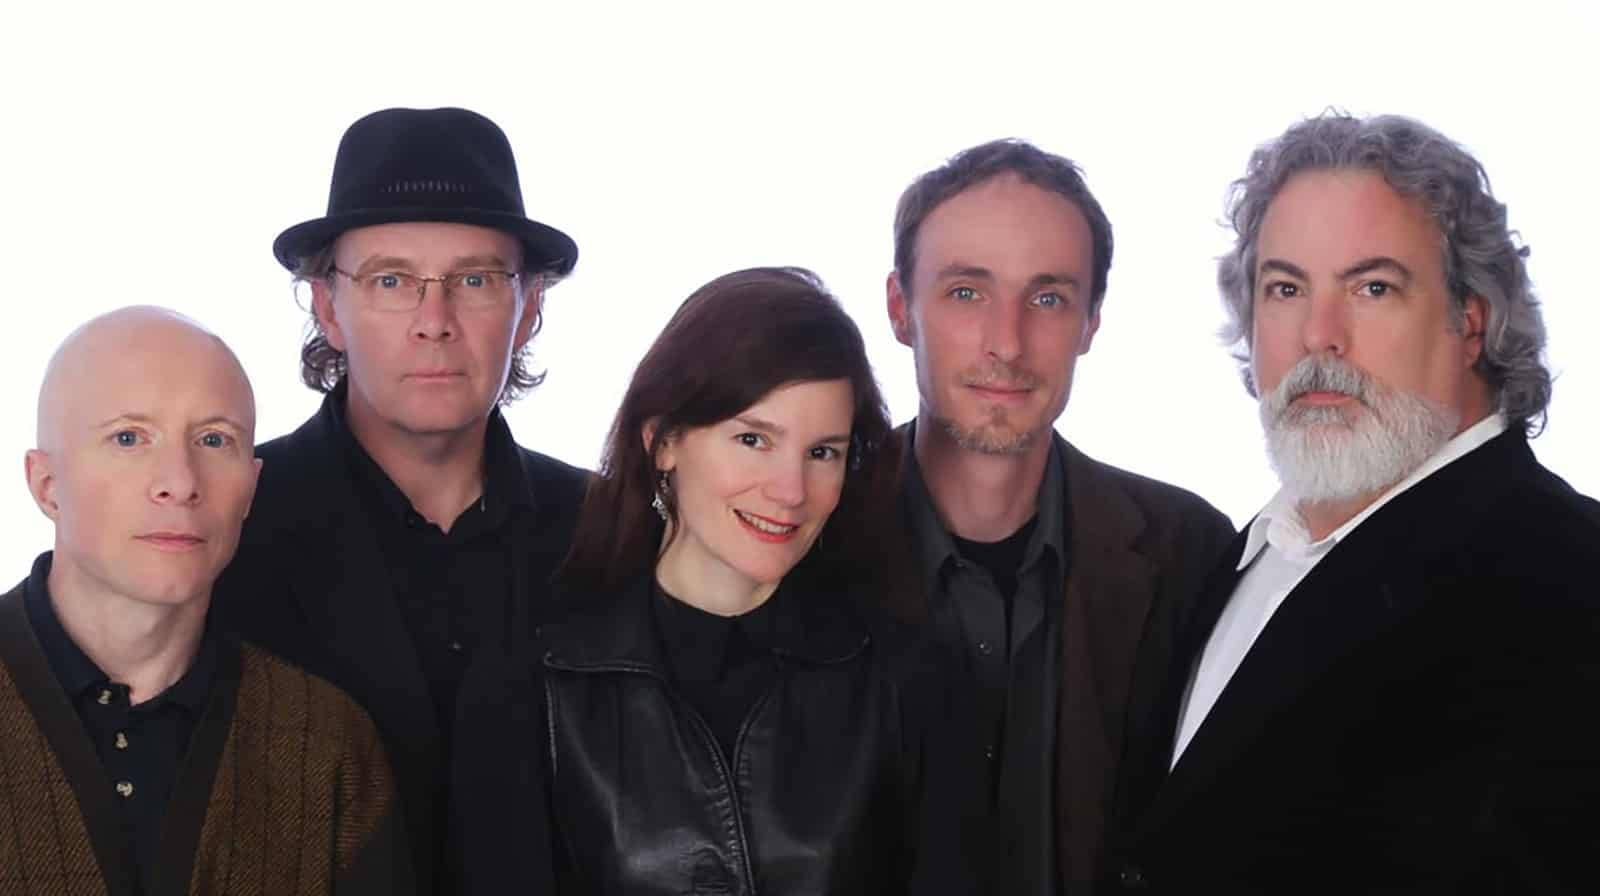 10000 Maniacs (Rescheduled from 3/27, 6/3)